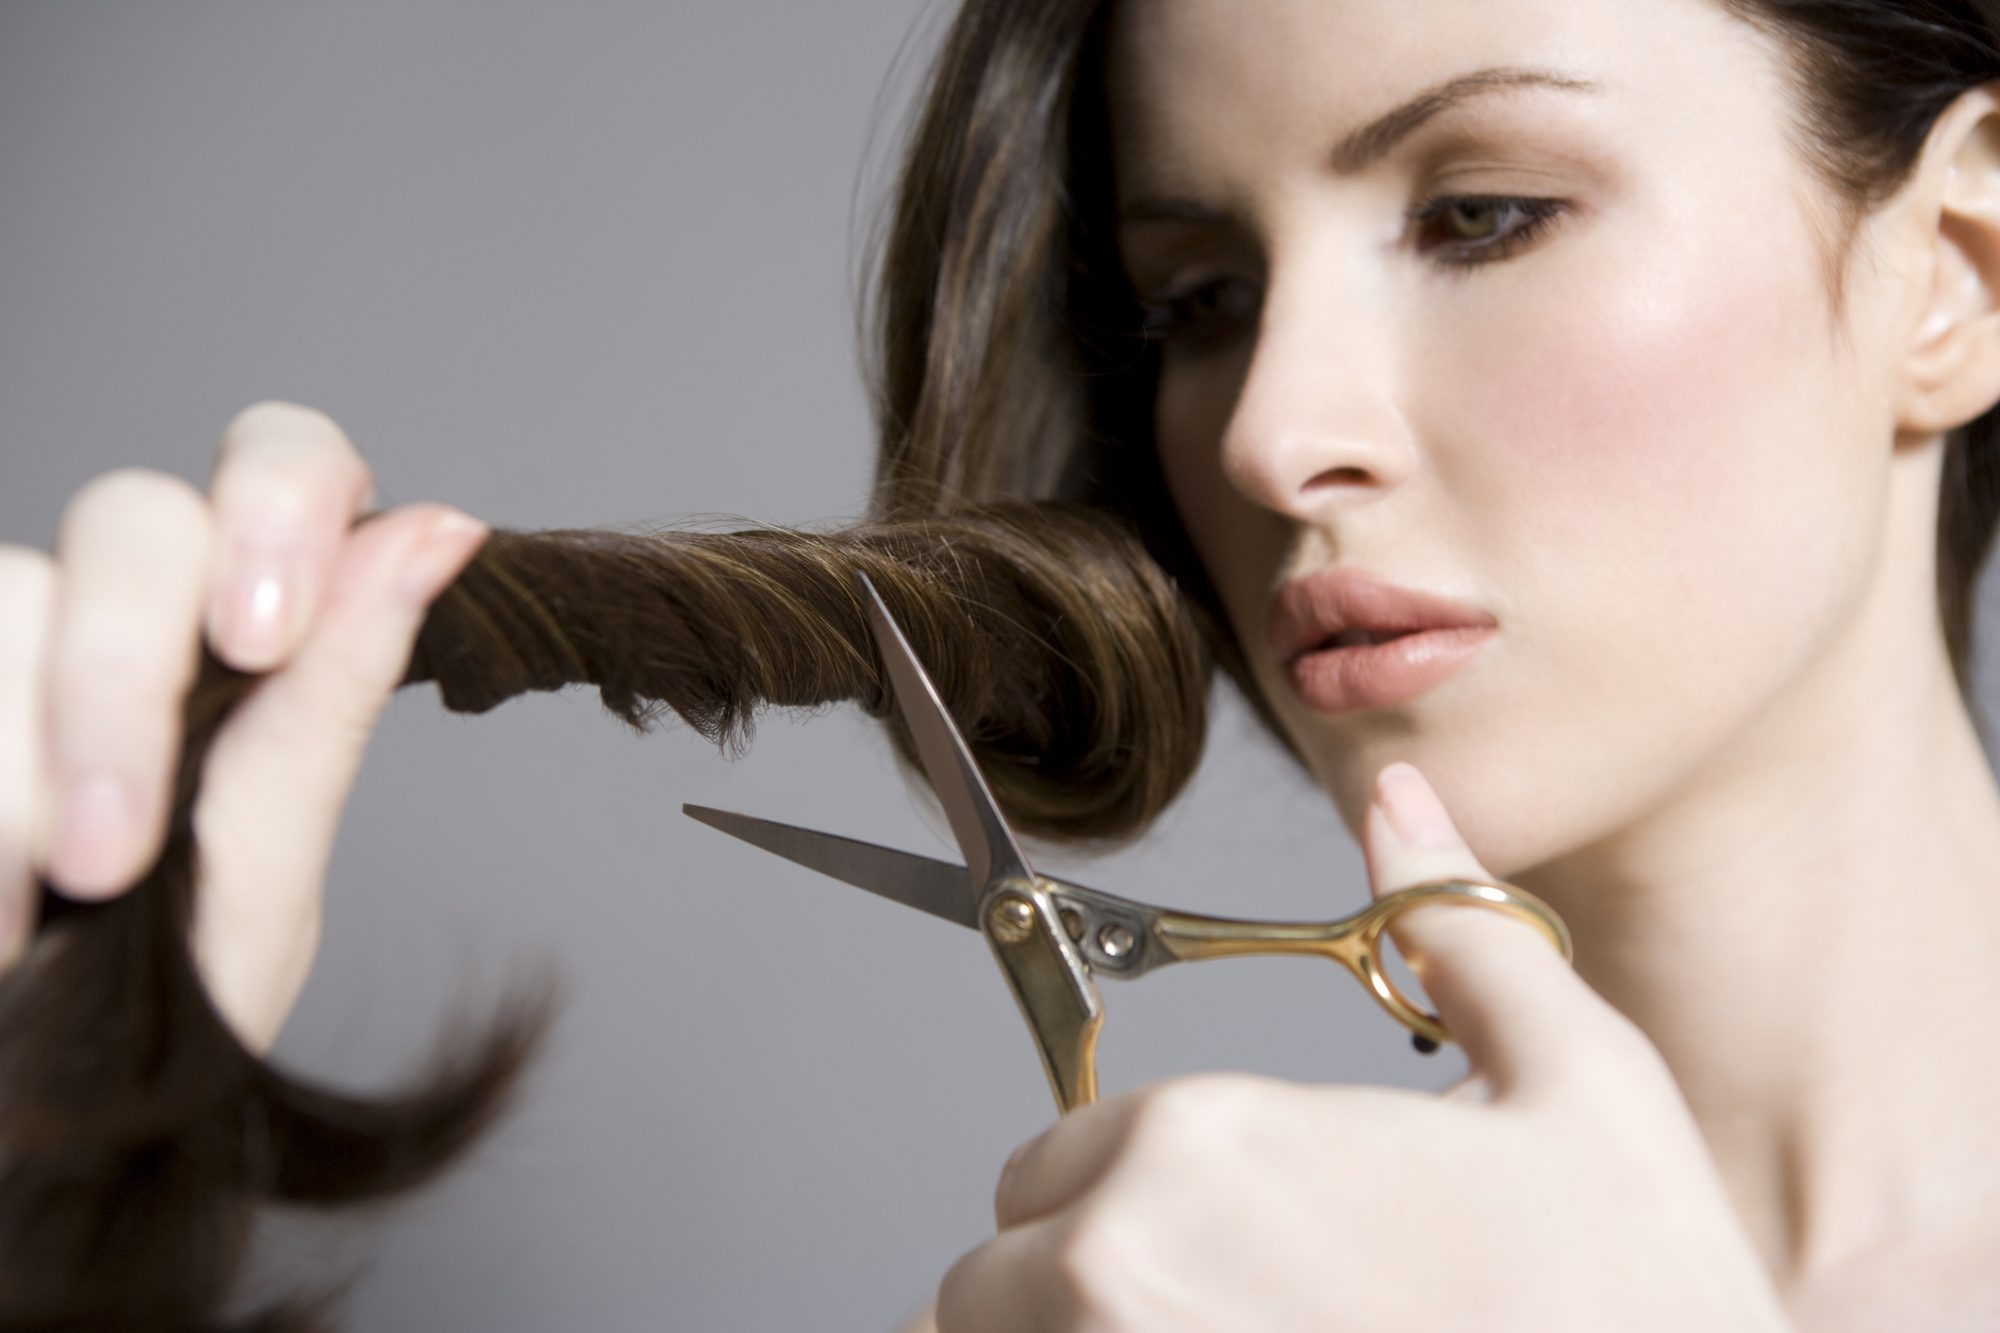 How to Get Rid of Split Ends At Home When You Can't Go to the Hair Salon